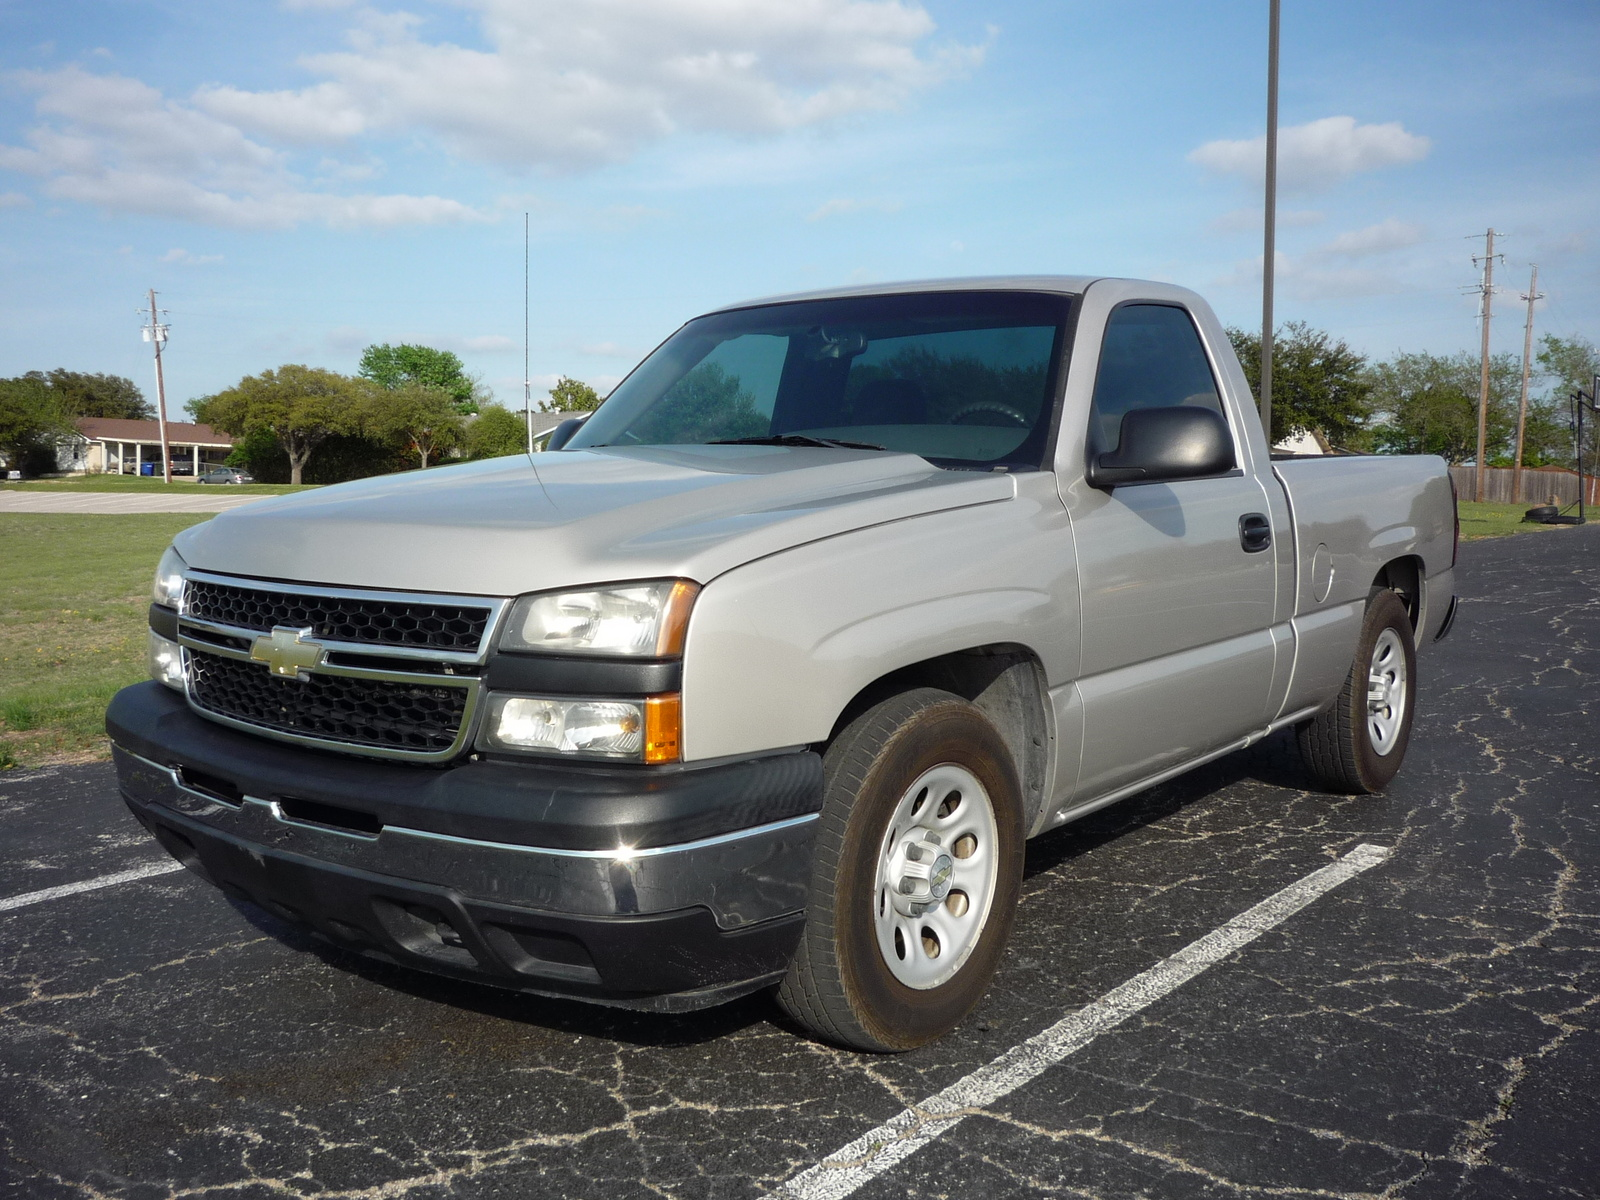 2006 chevy silverado ss specs autos post. Black Bedroom Furniture Sets. Home Design Ideas